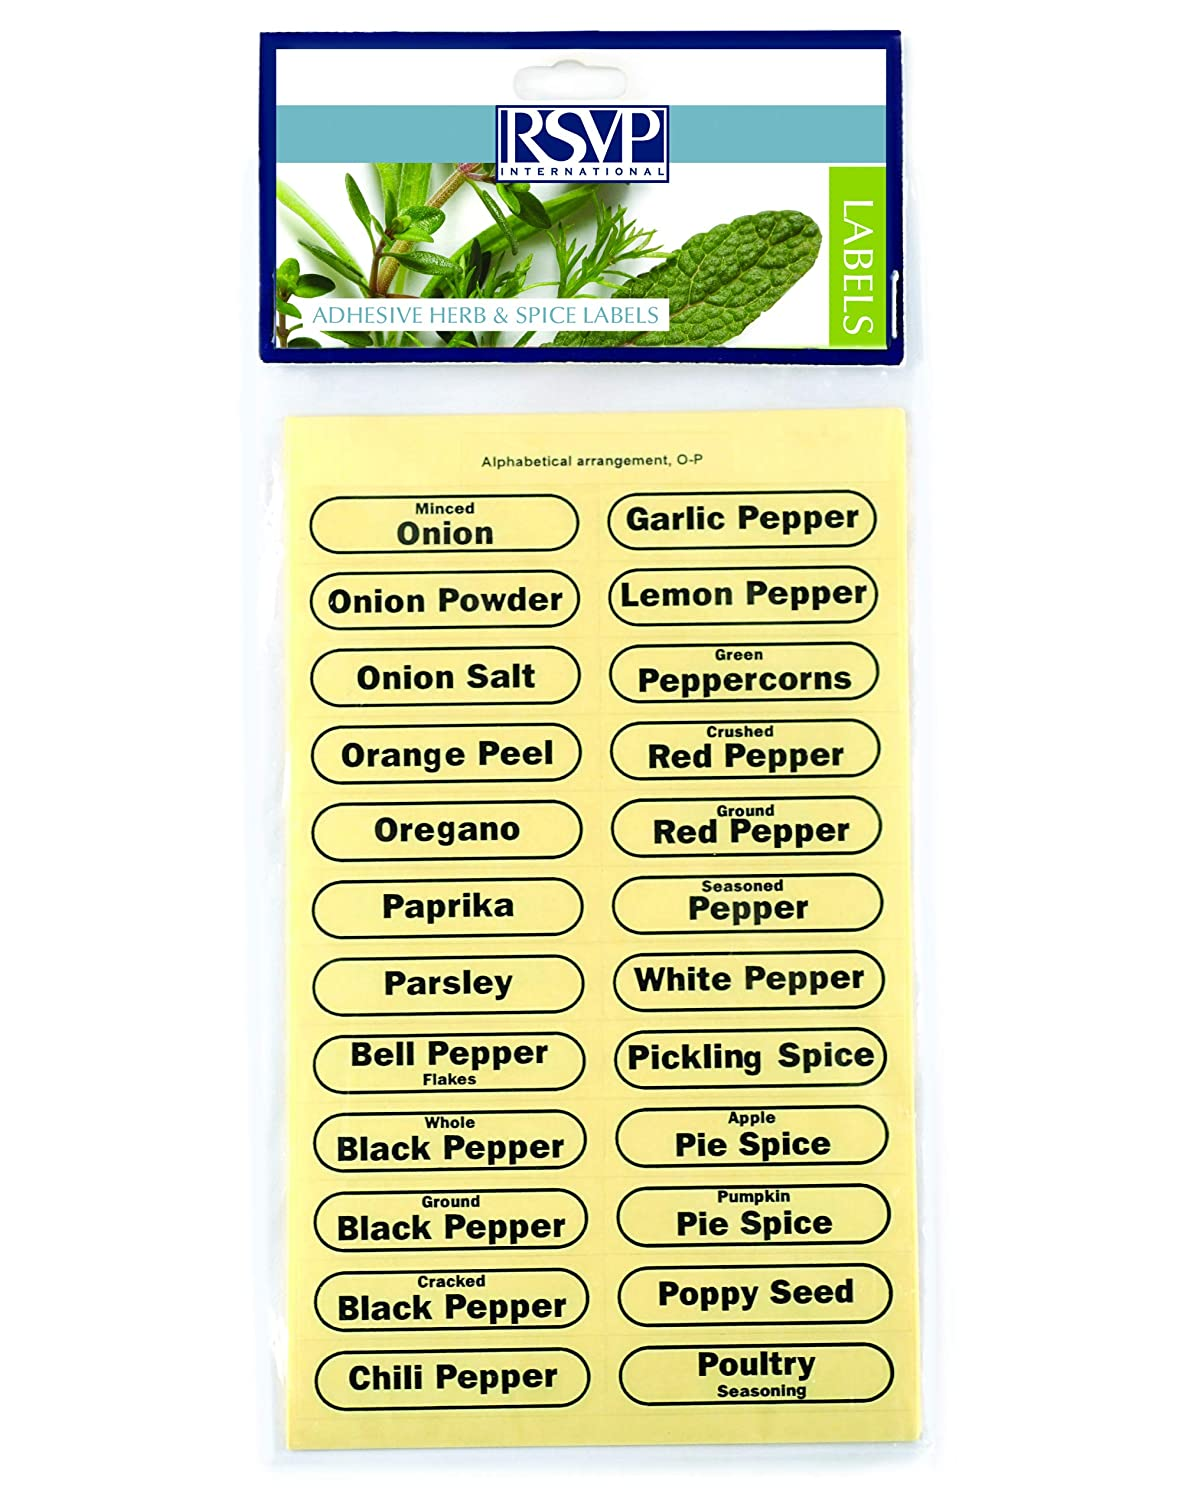 RSVP Clear Oval Adhesive Pre-Printed Spice /& Herb Jar Labels 2 Sets Of 96